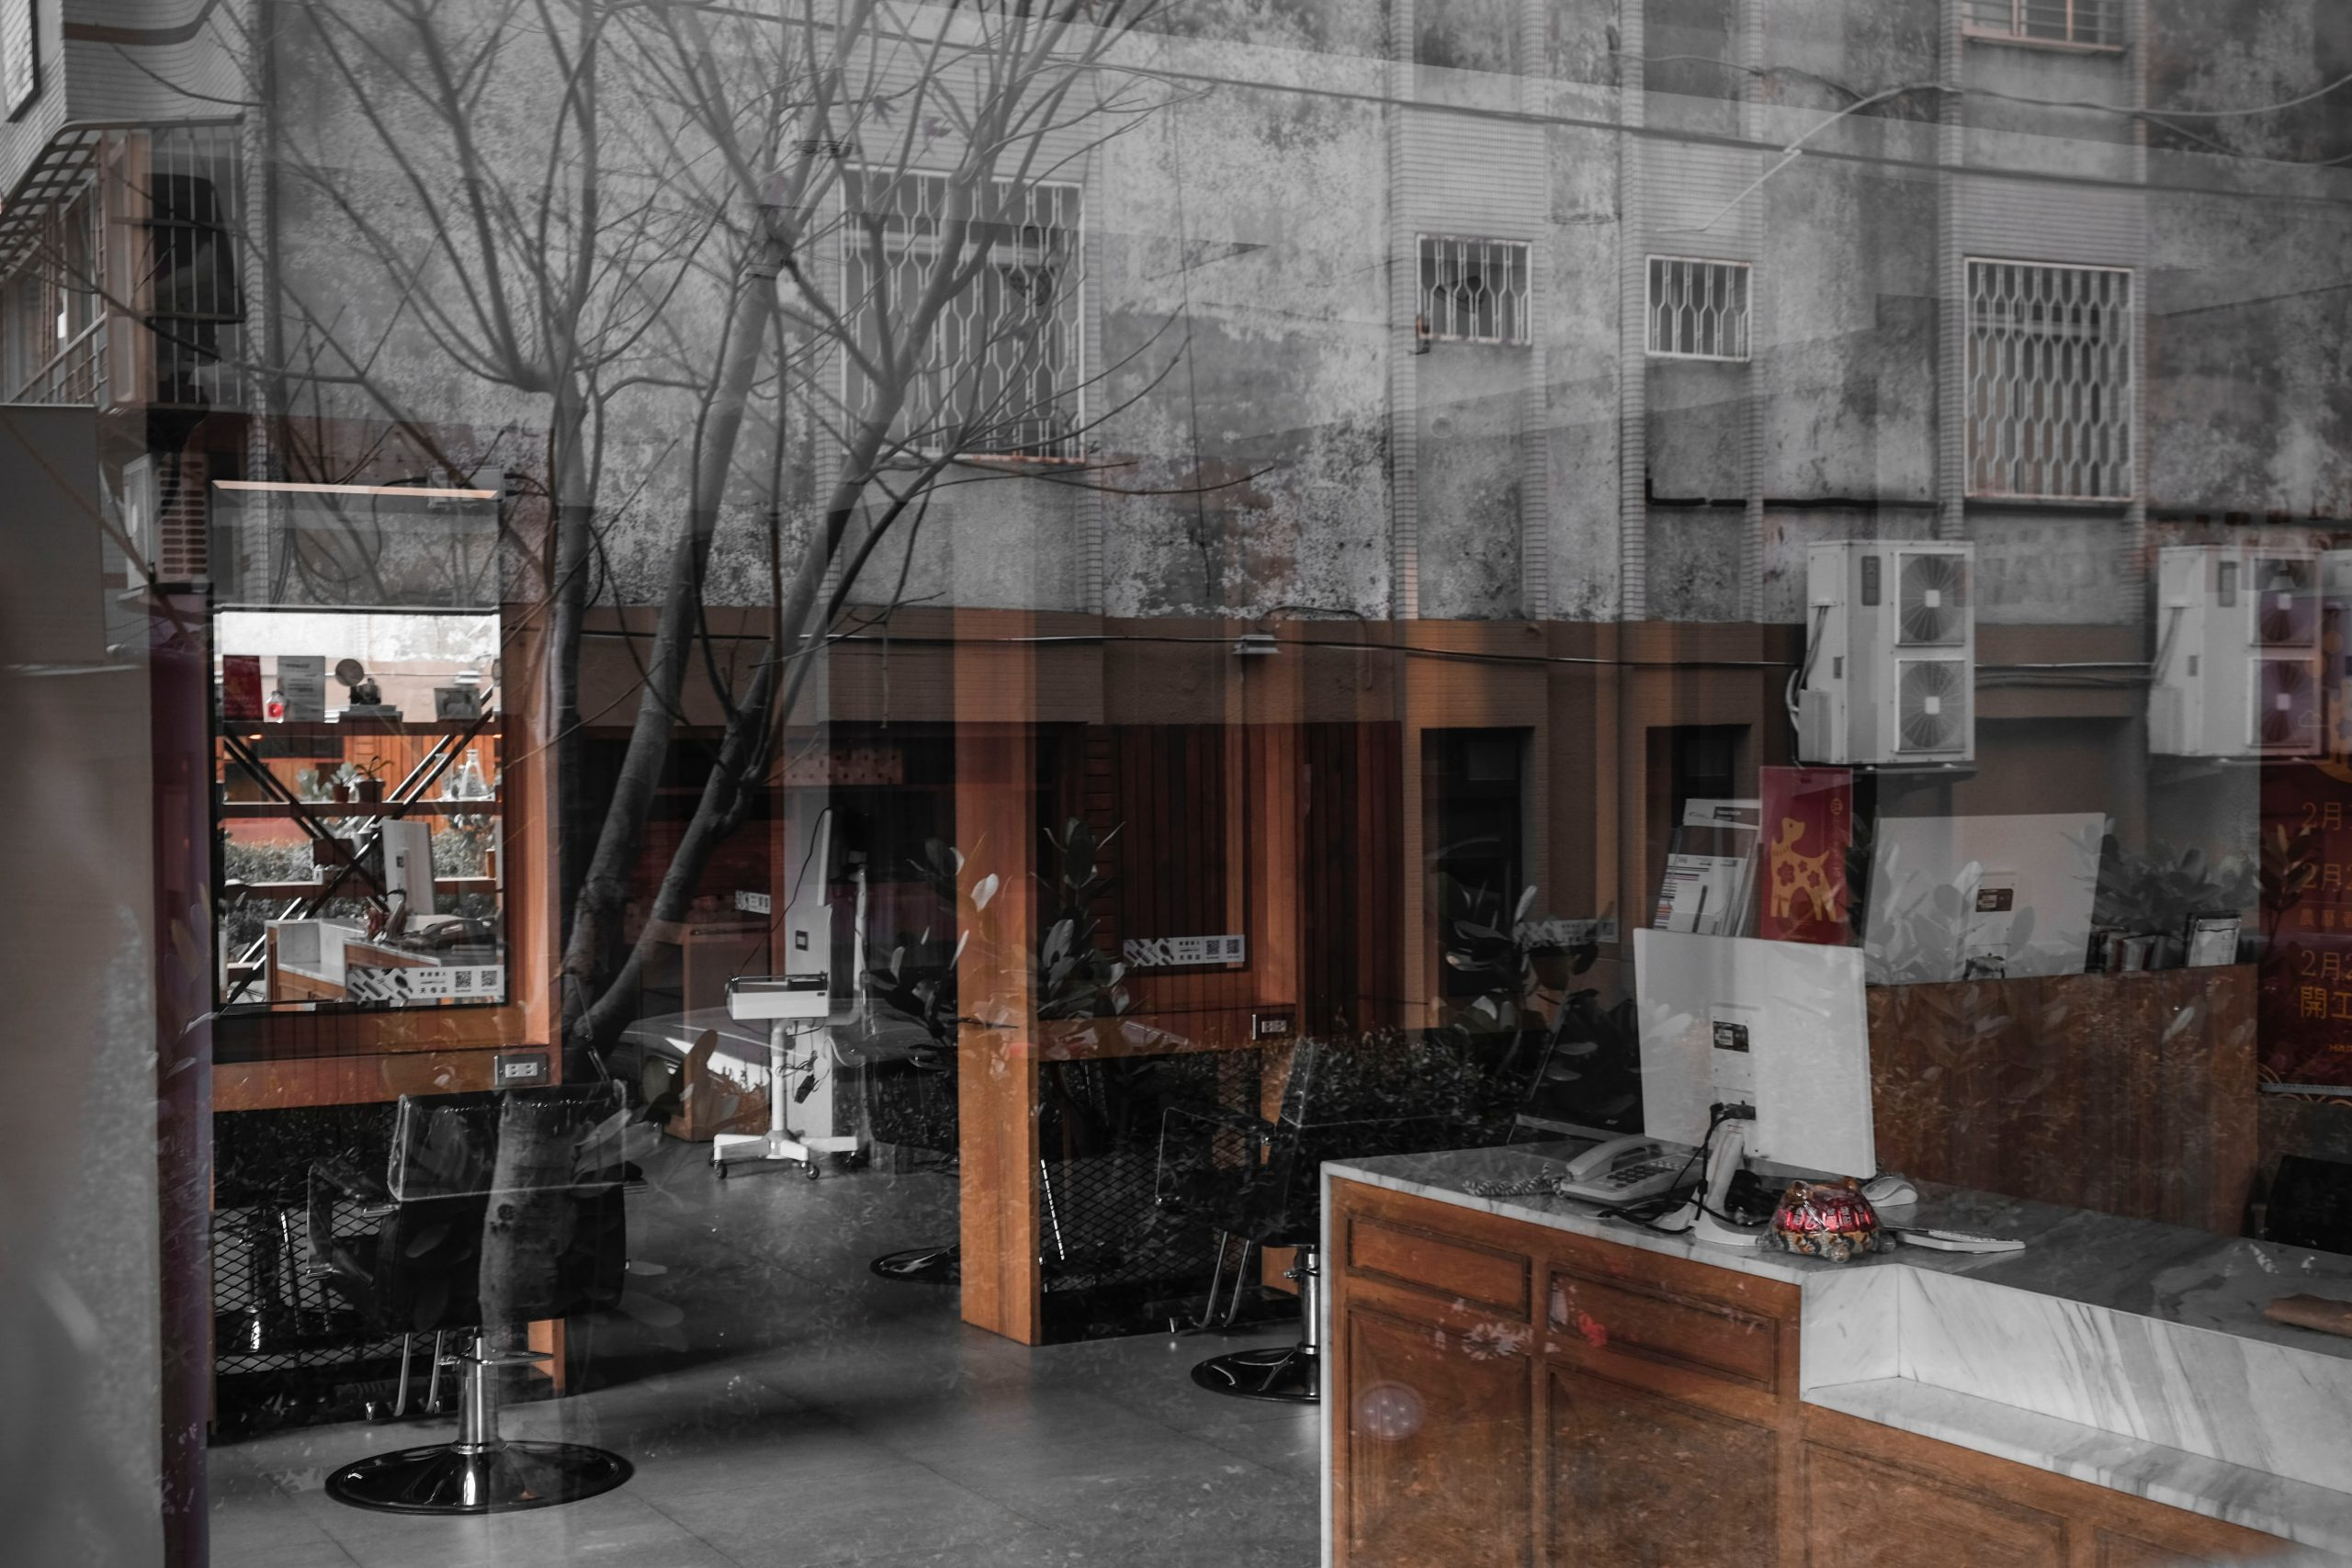 Double-exposure image of interior and exterior of office building.